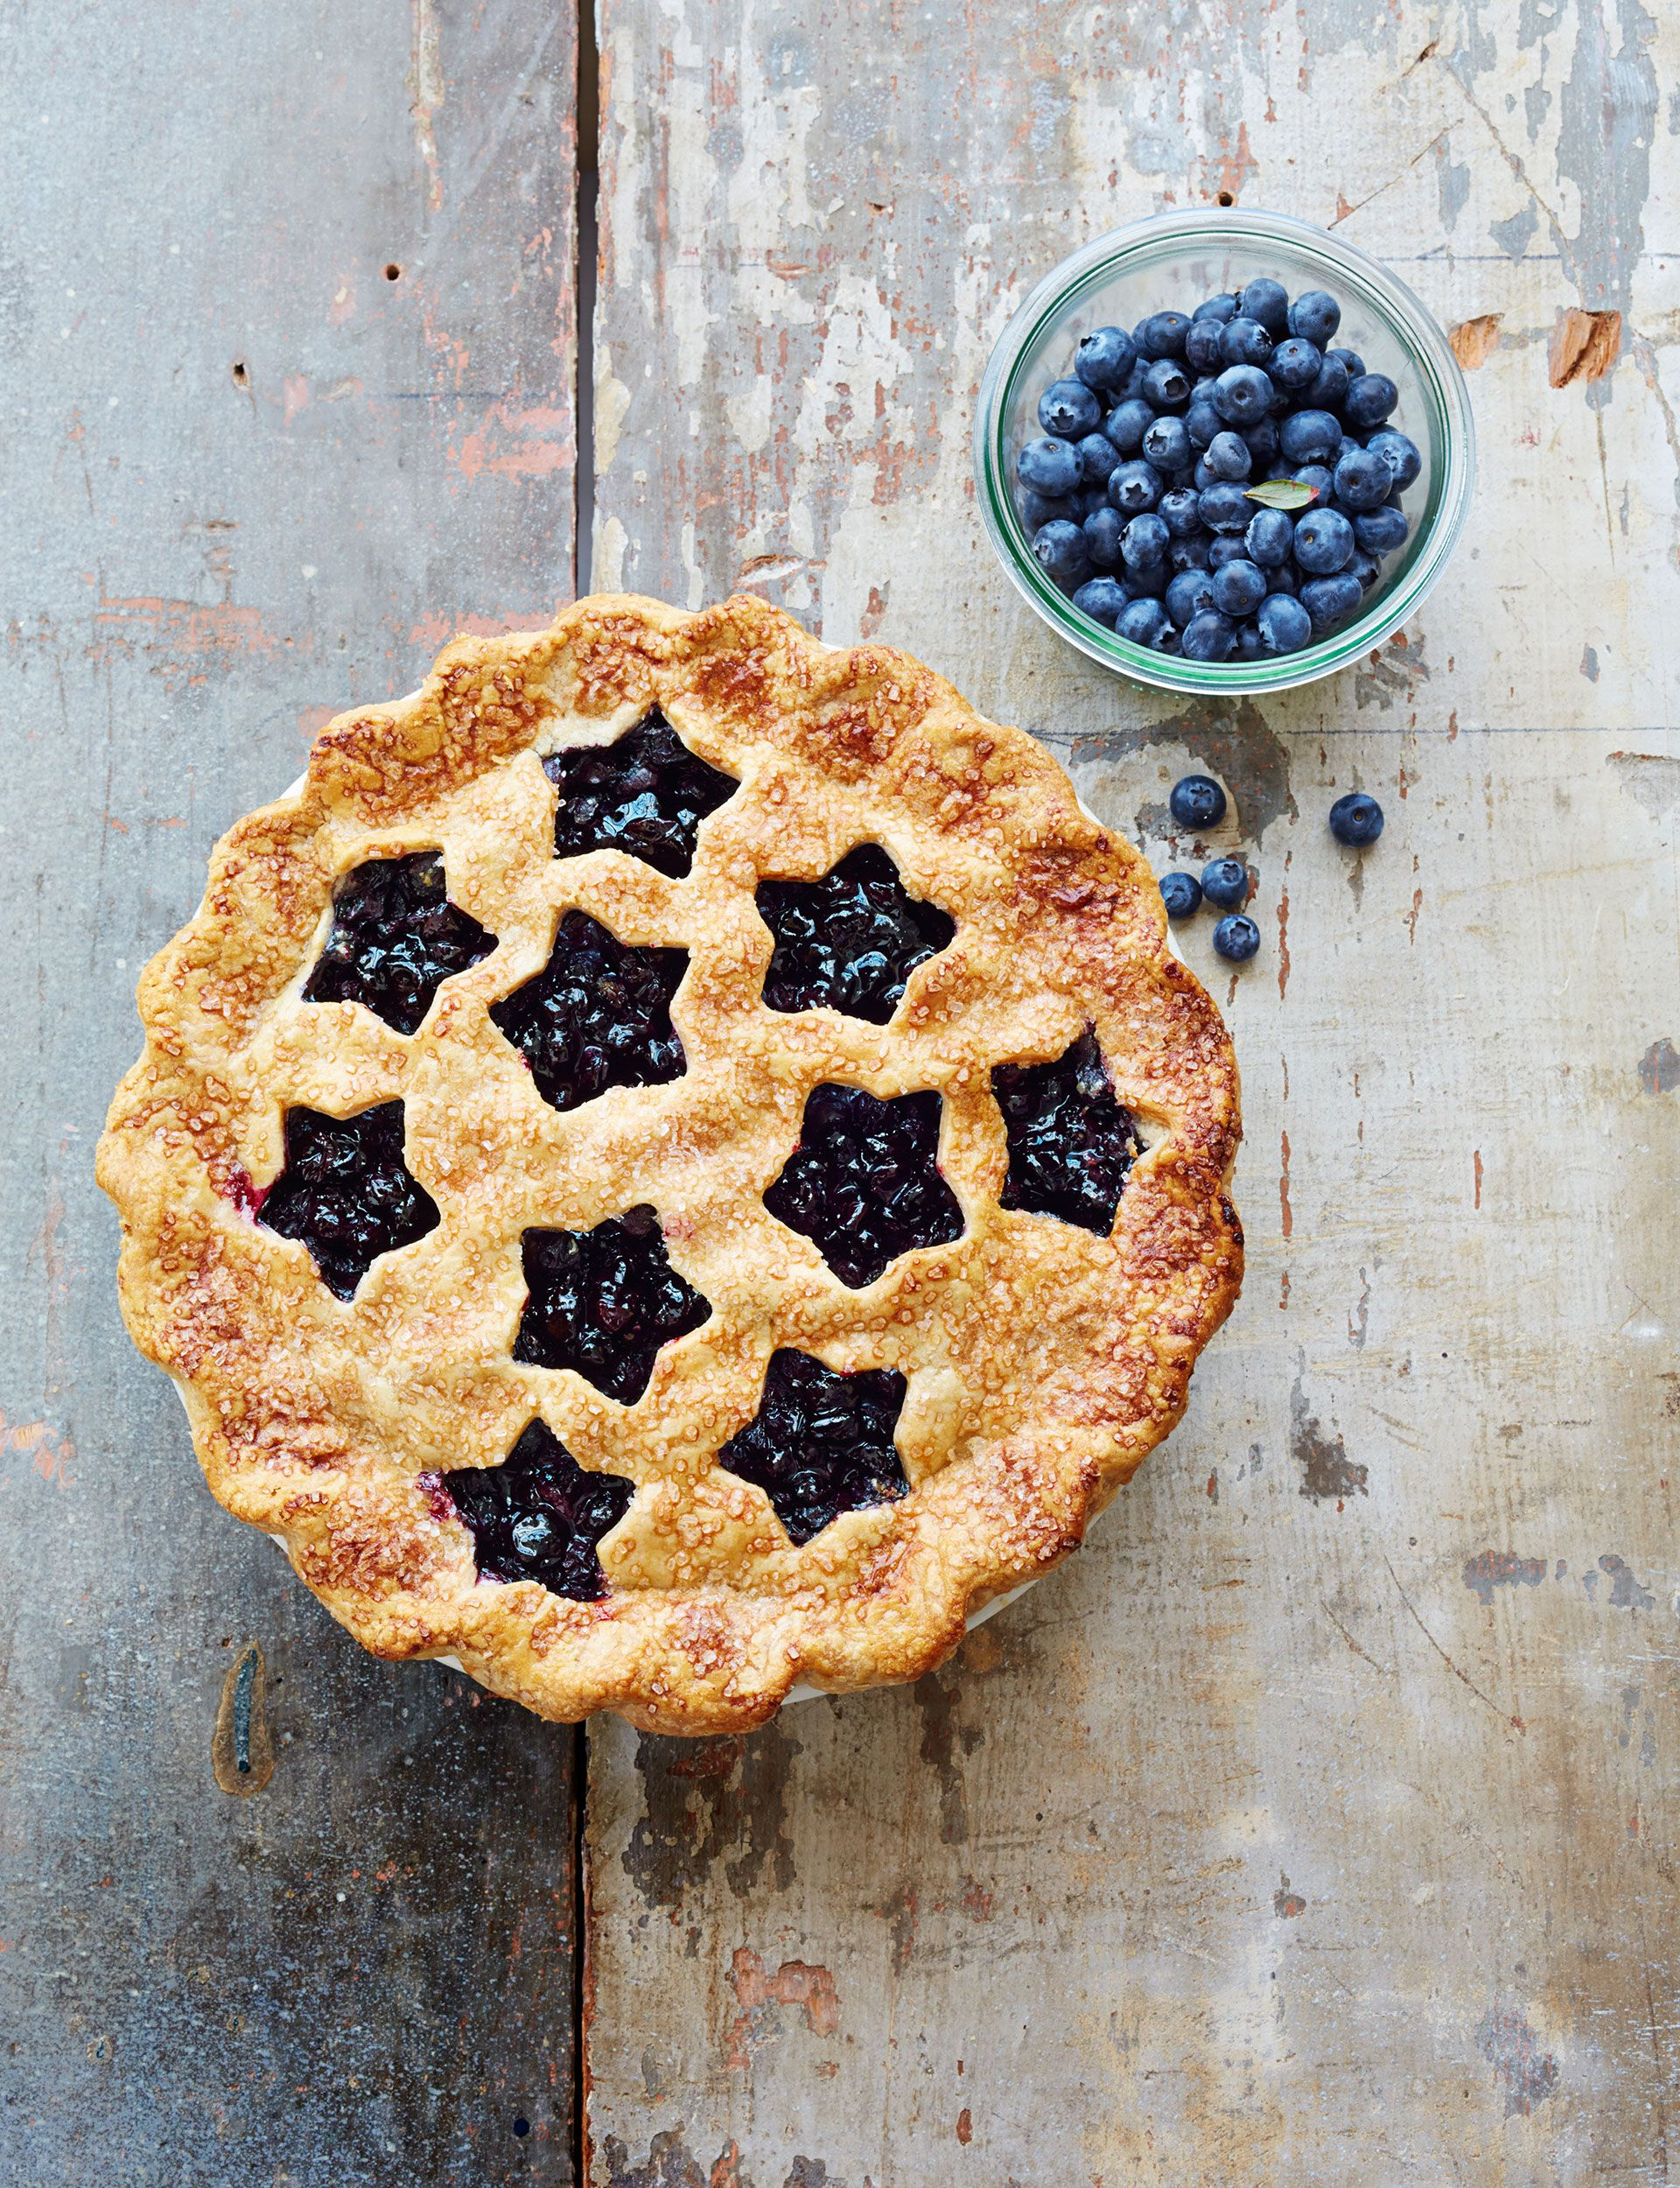 Cutaway Blueberry Pie